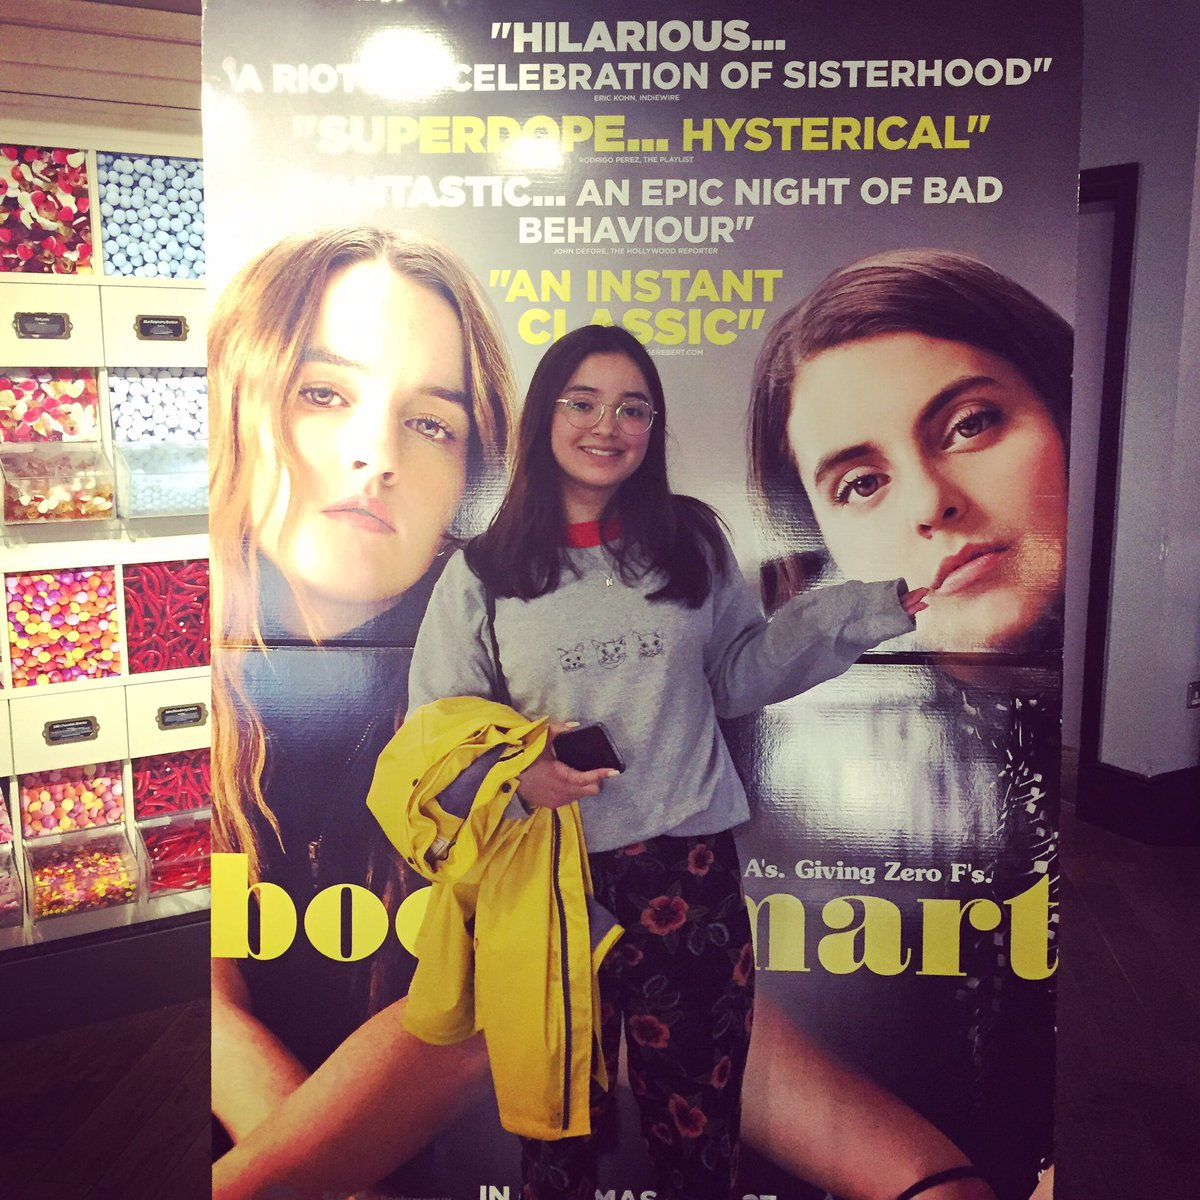 And now @Booksmart !